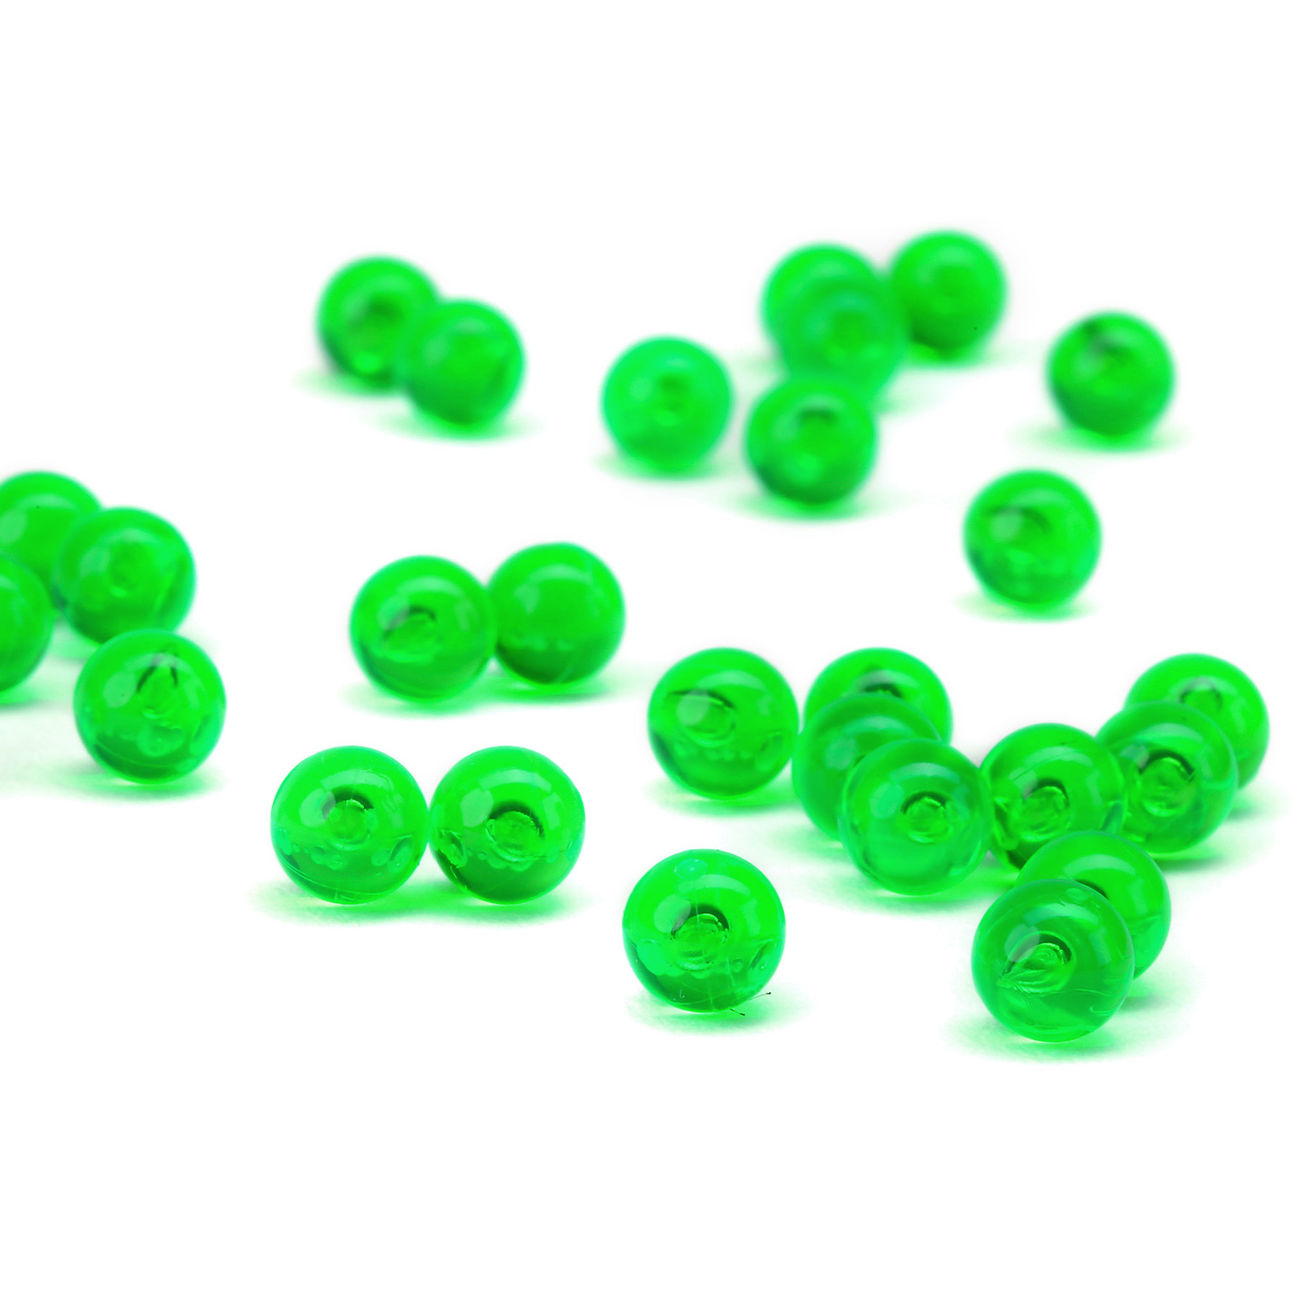 Cybergun Colt Competition Grade BBs 0,12g 5.000er Container Clear Green 2